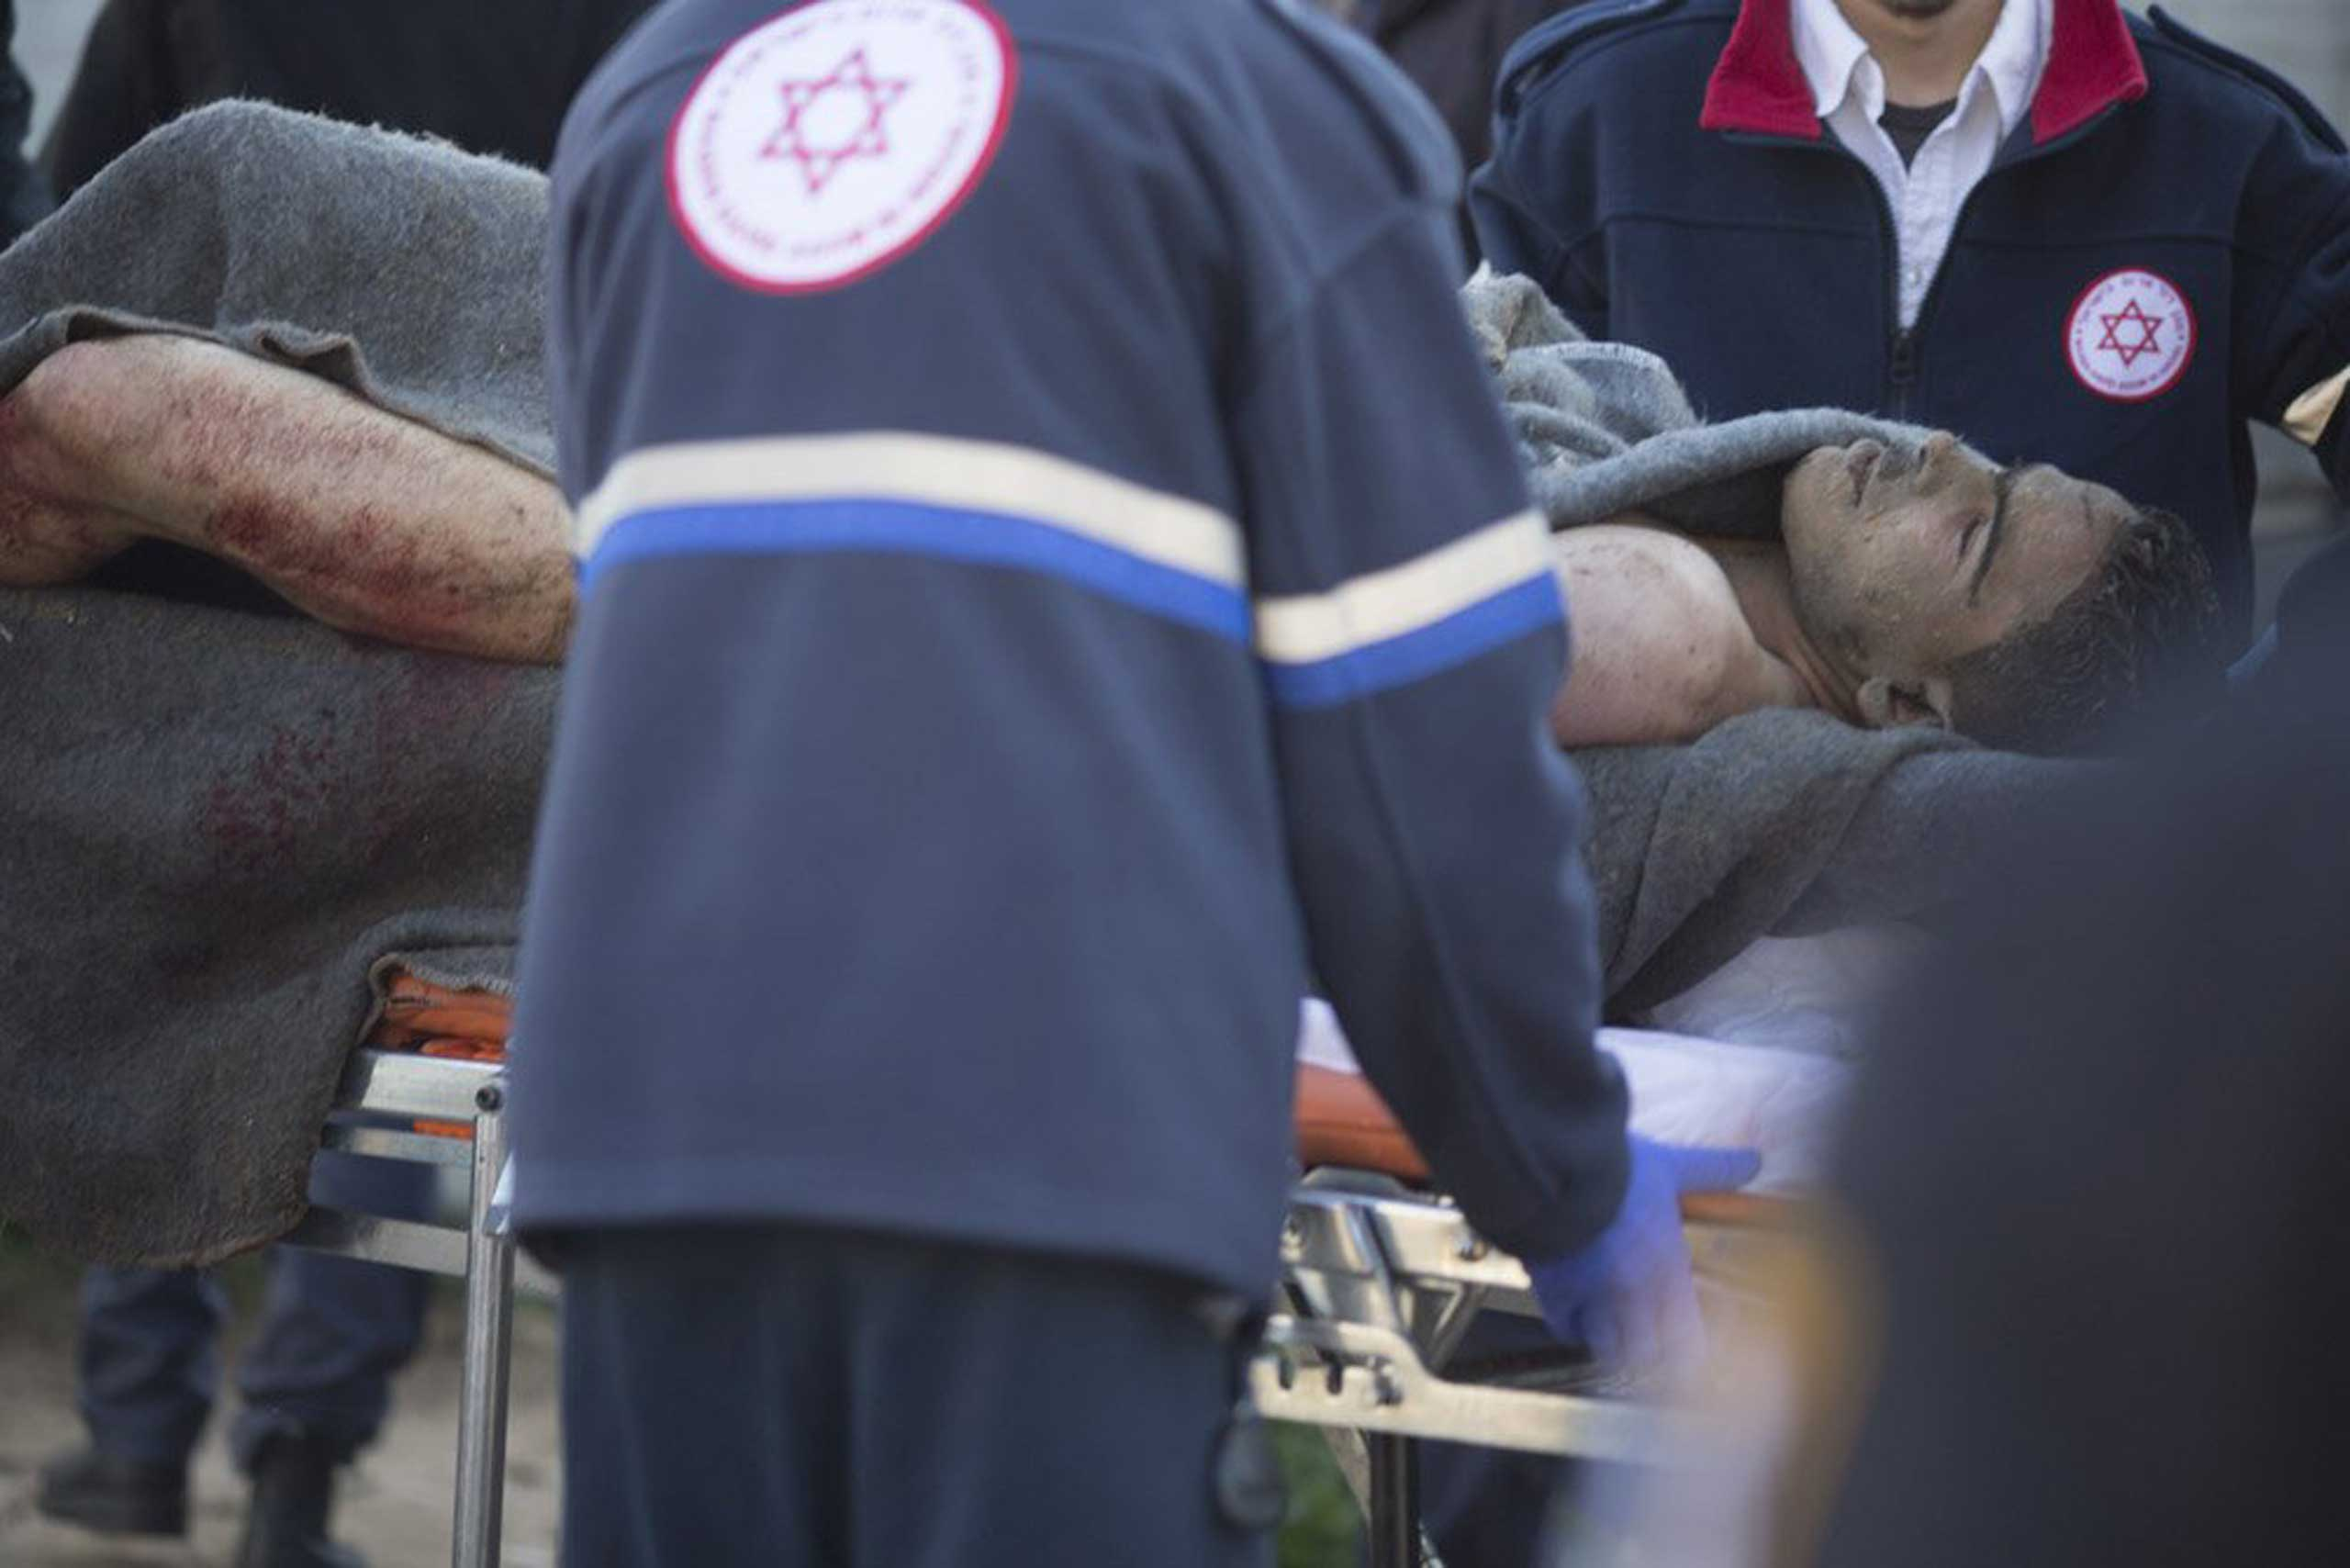 Israeli police carry the injured suspect on a stretcher as they attend the scene of a stabbing attack on Jan. 21, 2015 in Tel Aviv.